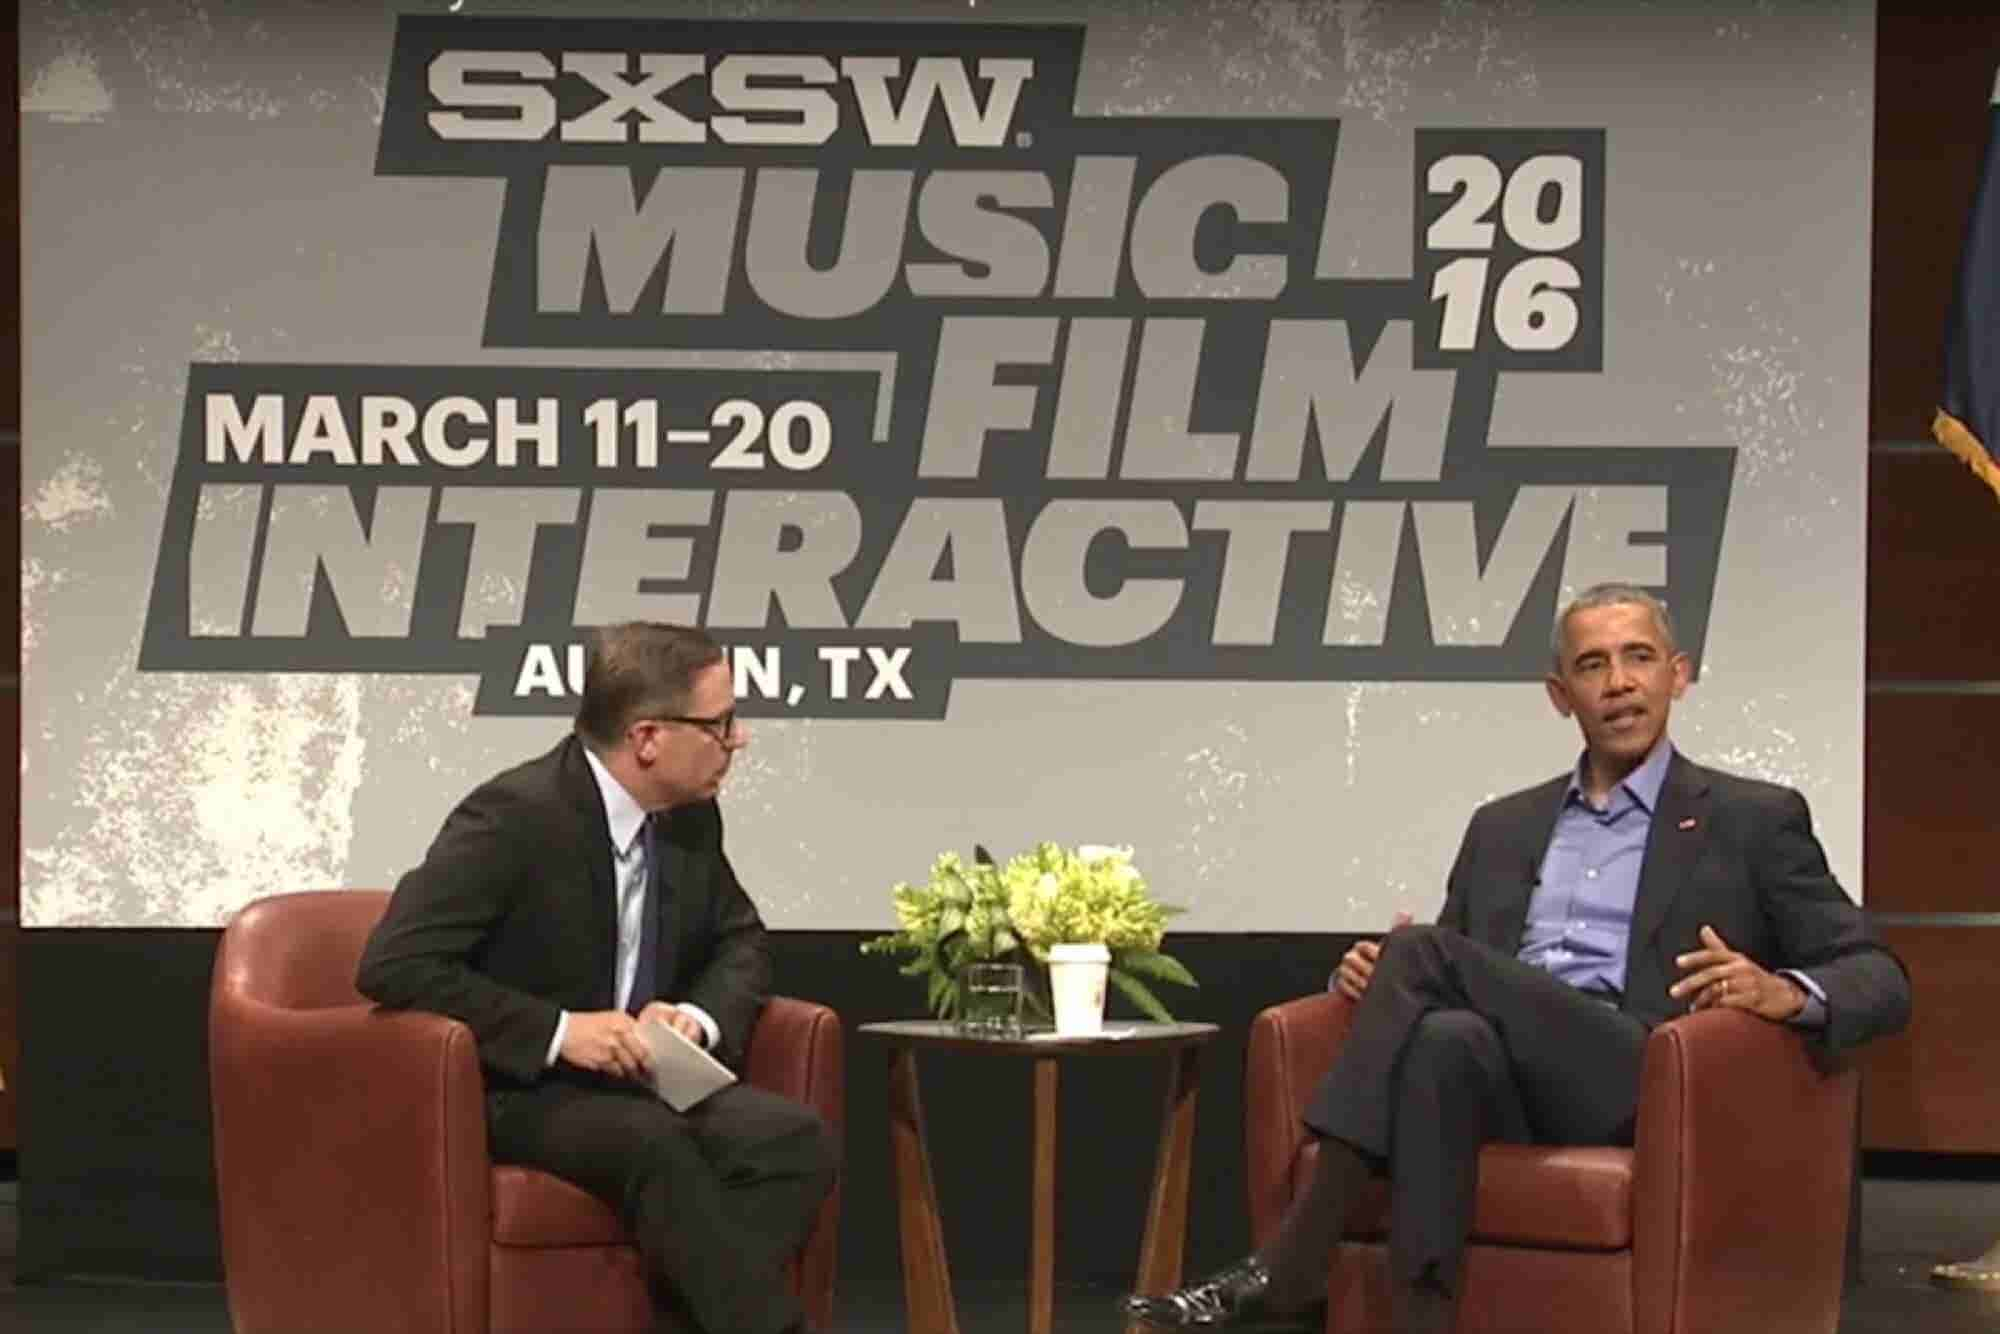 At SXSW: Barack Obama's Call to Action for the Tech Industry